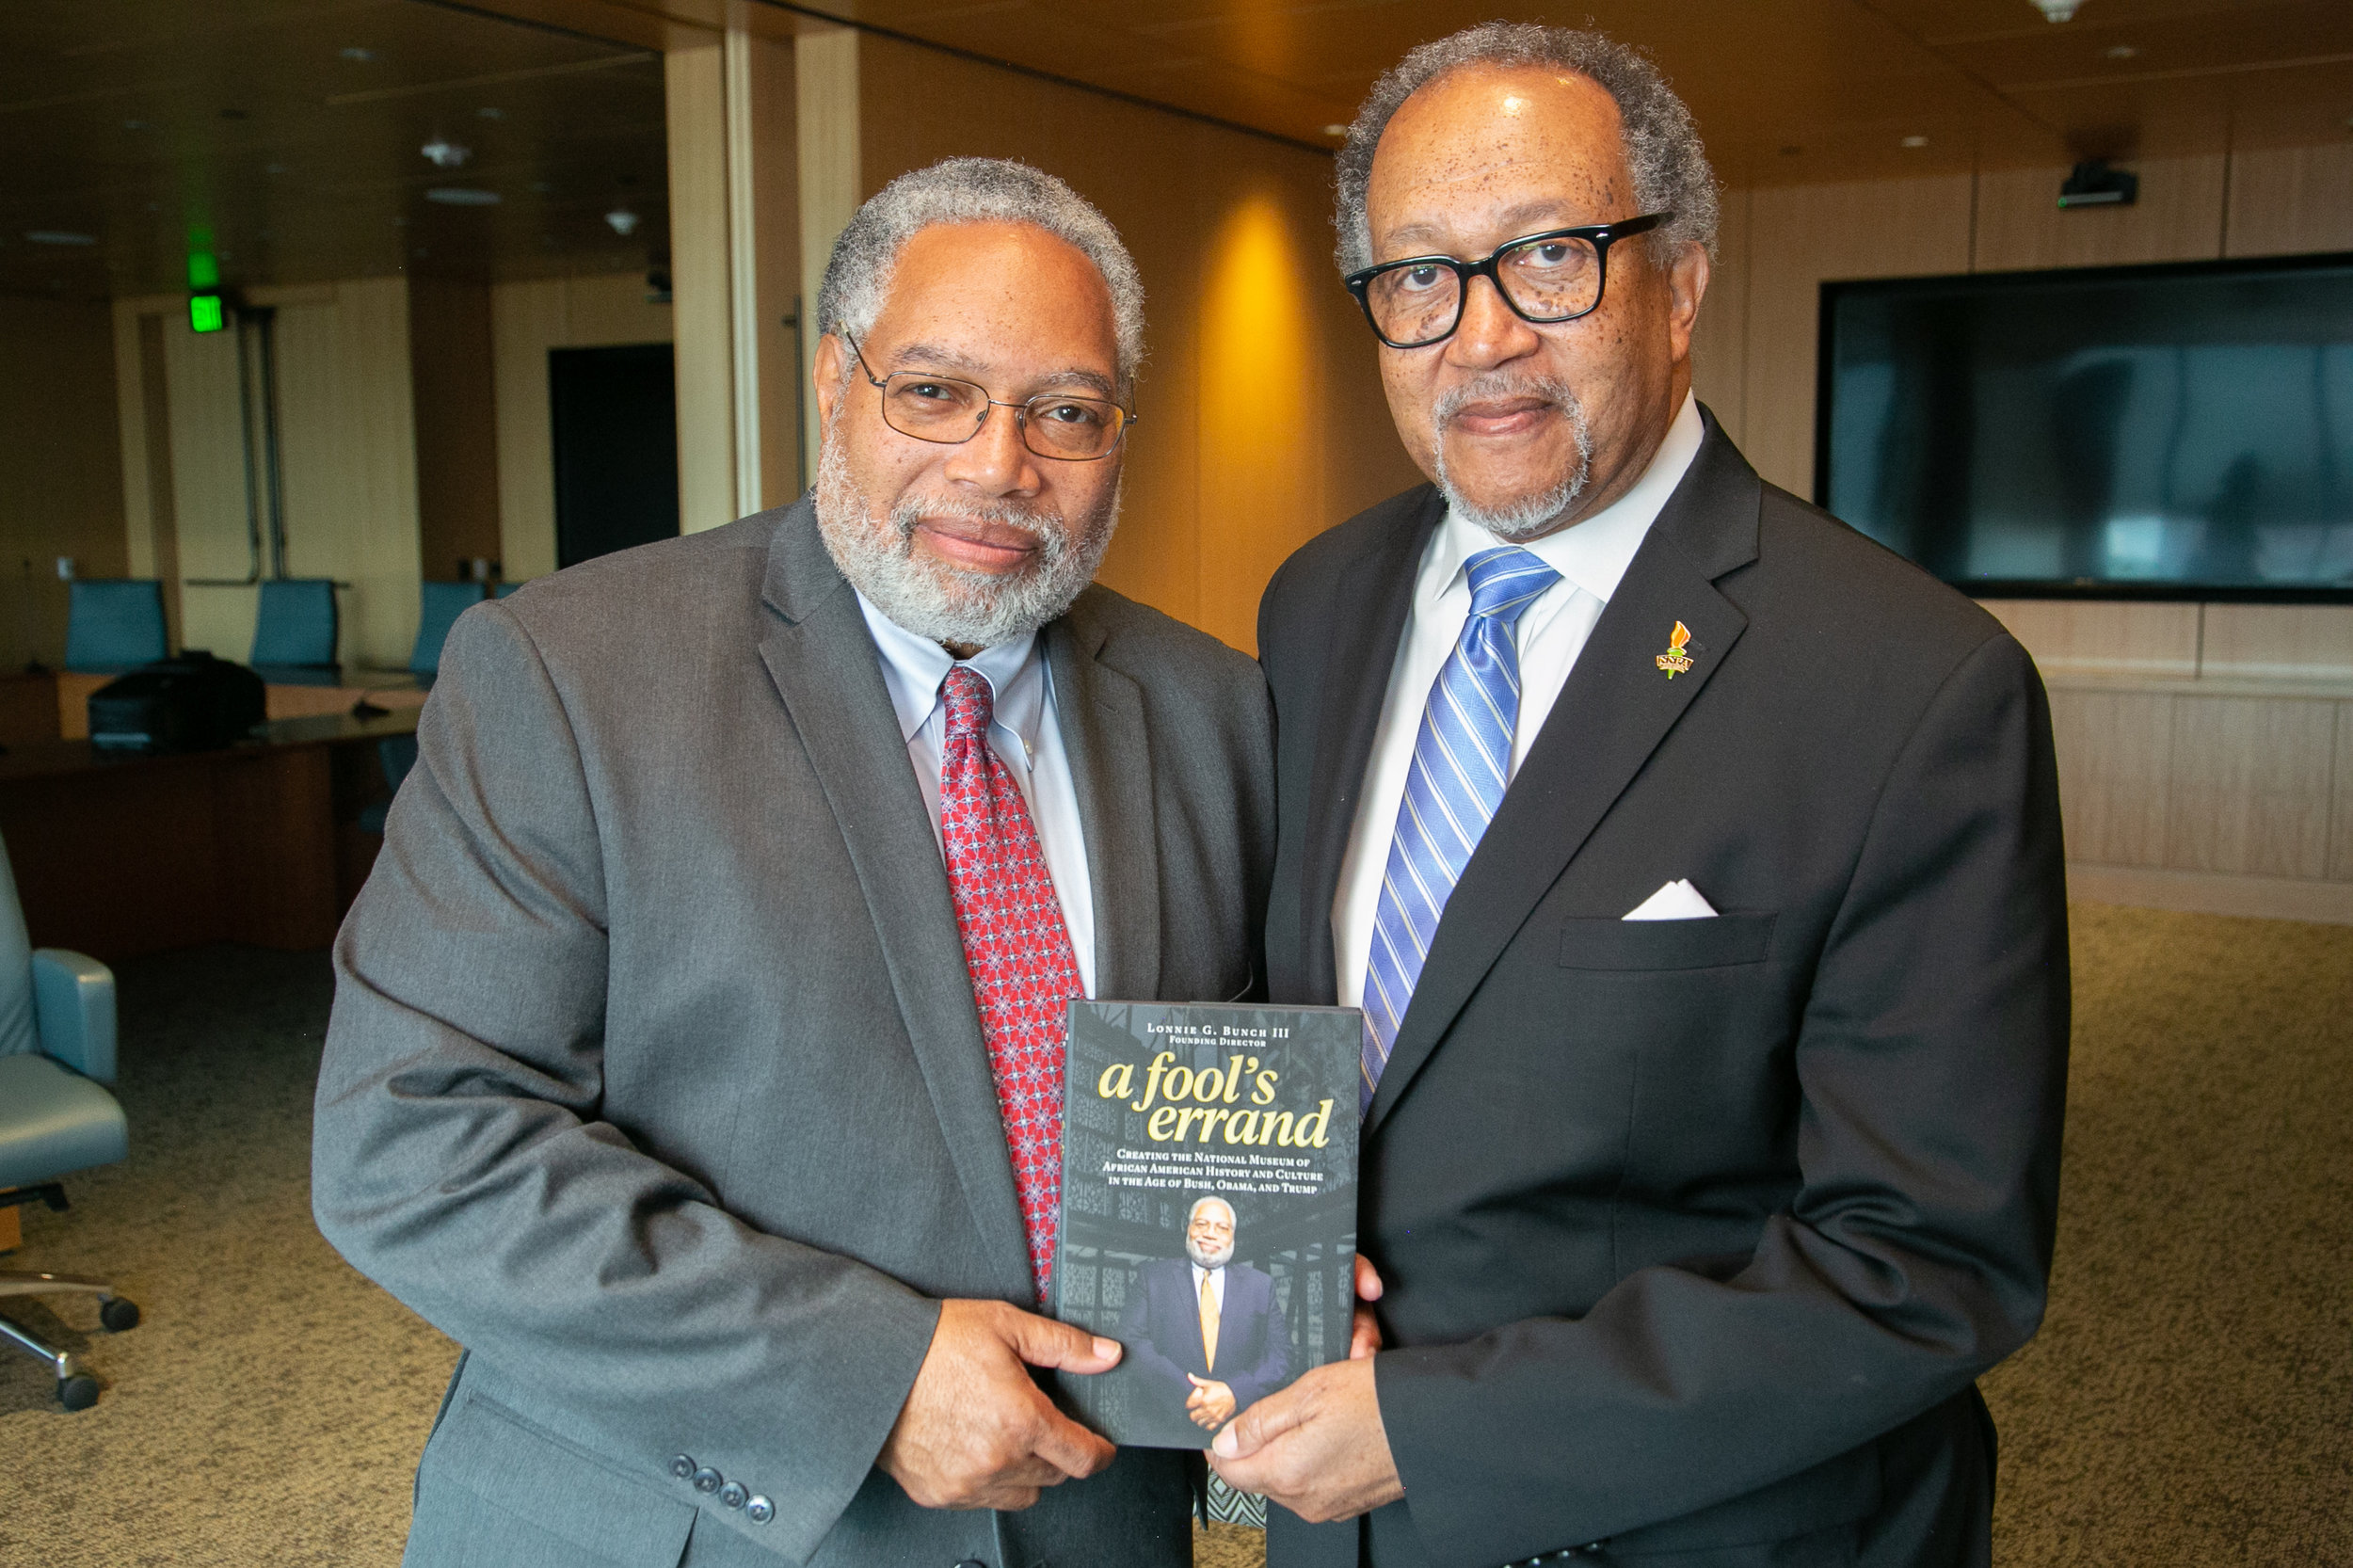 """Dr. Lonnie Bunch III, the 14th Secretary of the Smithsonian Institution, sat down for an exclusive interview with National Newspaper Publishers Association (NNPA) President and CEO Dr. Benjamin F. Chavis, Jr. The two discussed Bunch's timely new book released today, """"A Fool's Errand: Creating the National Museum of African American History and Culture in the Age of Bush, Obama, and Trump."""""""